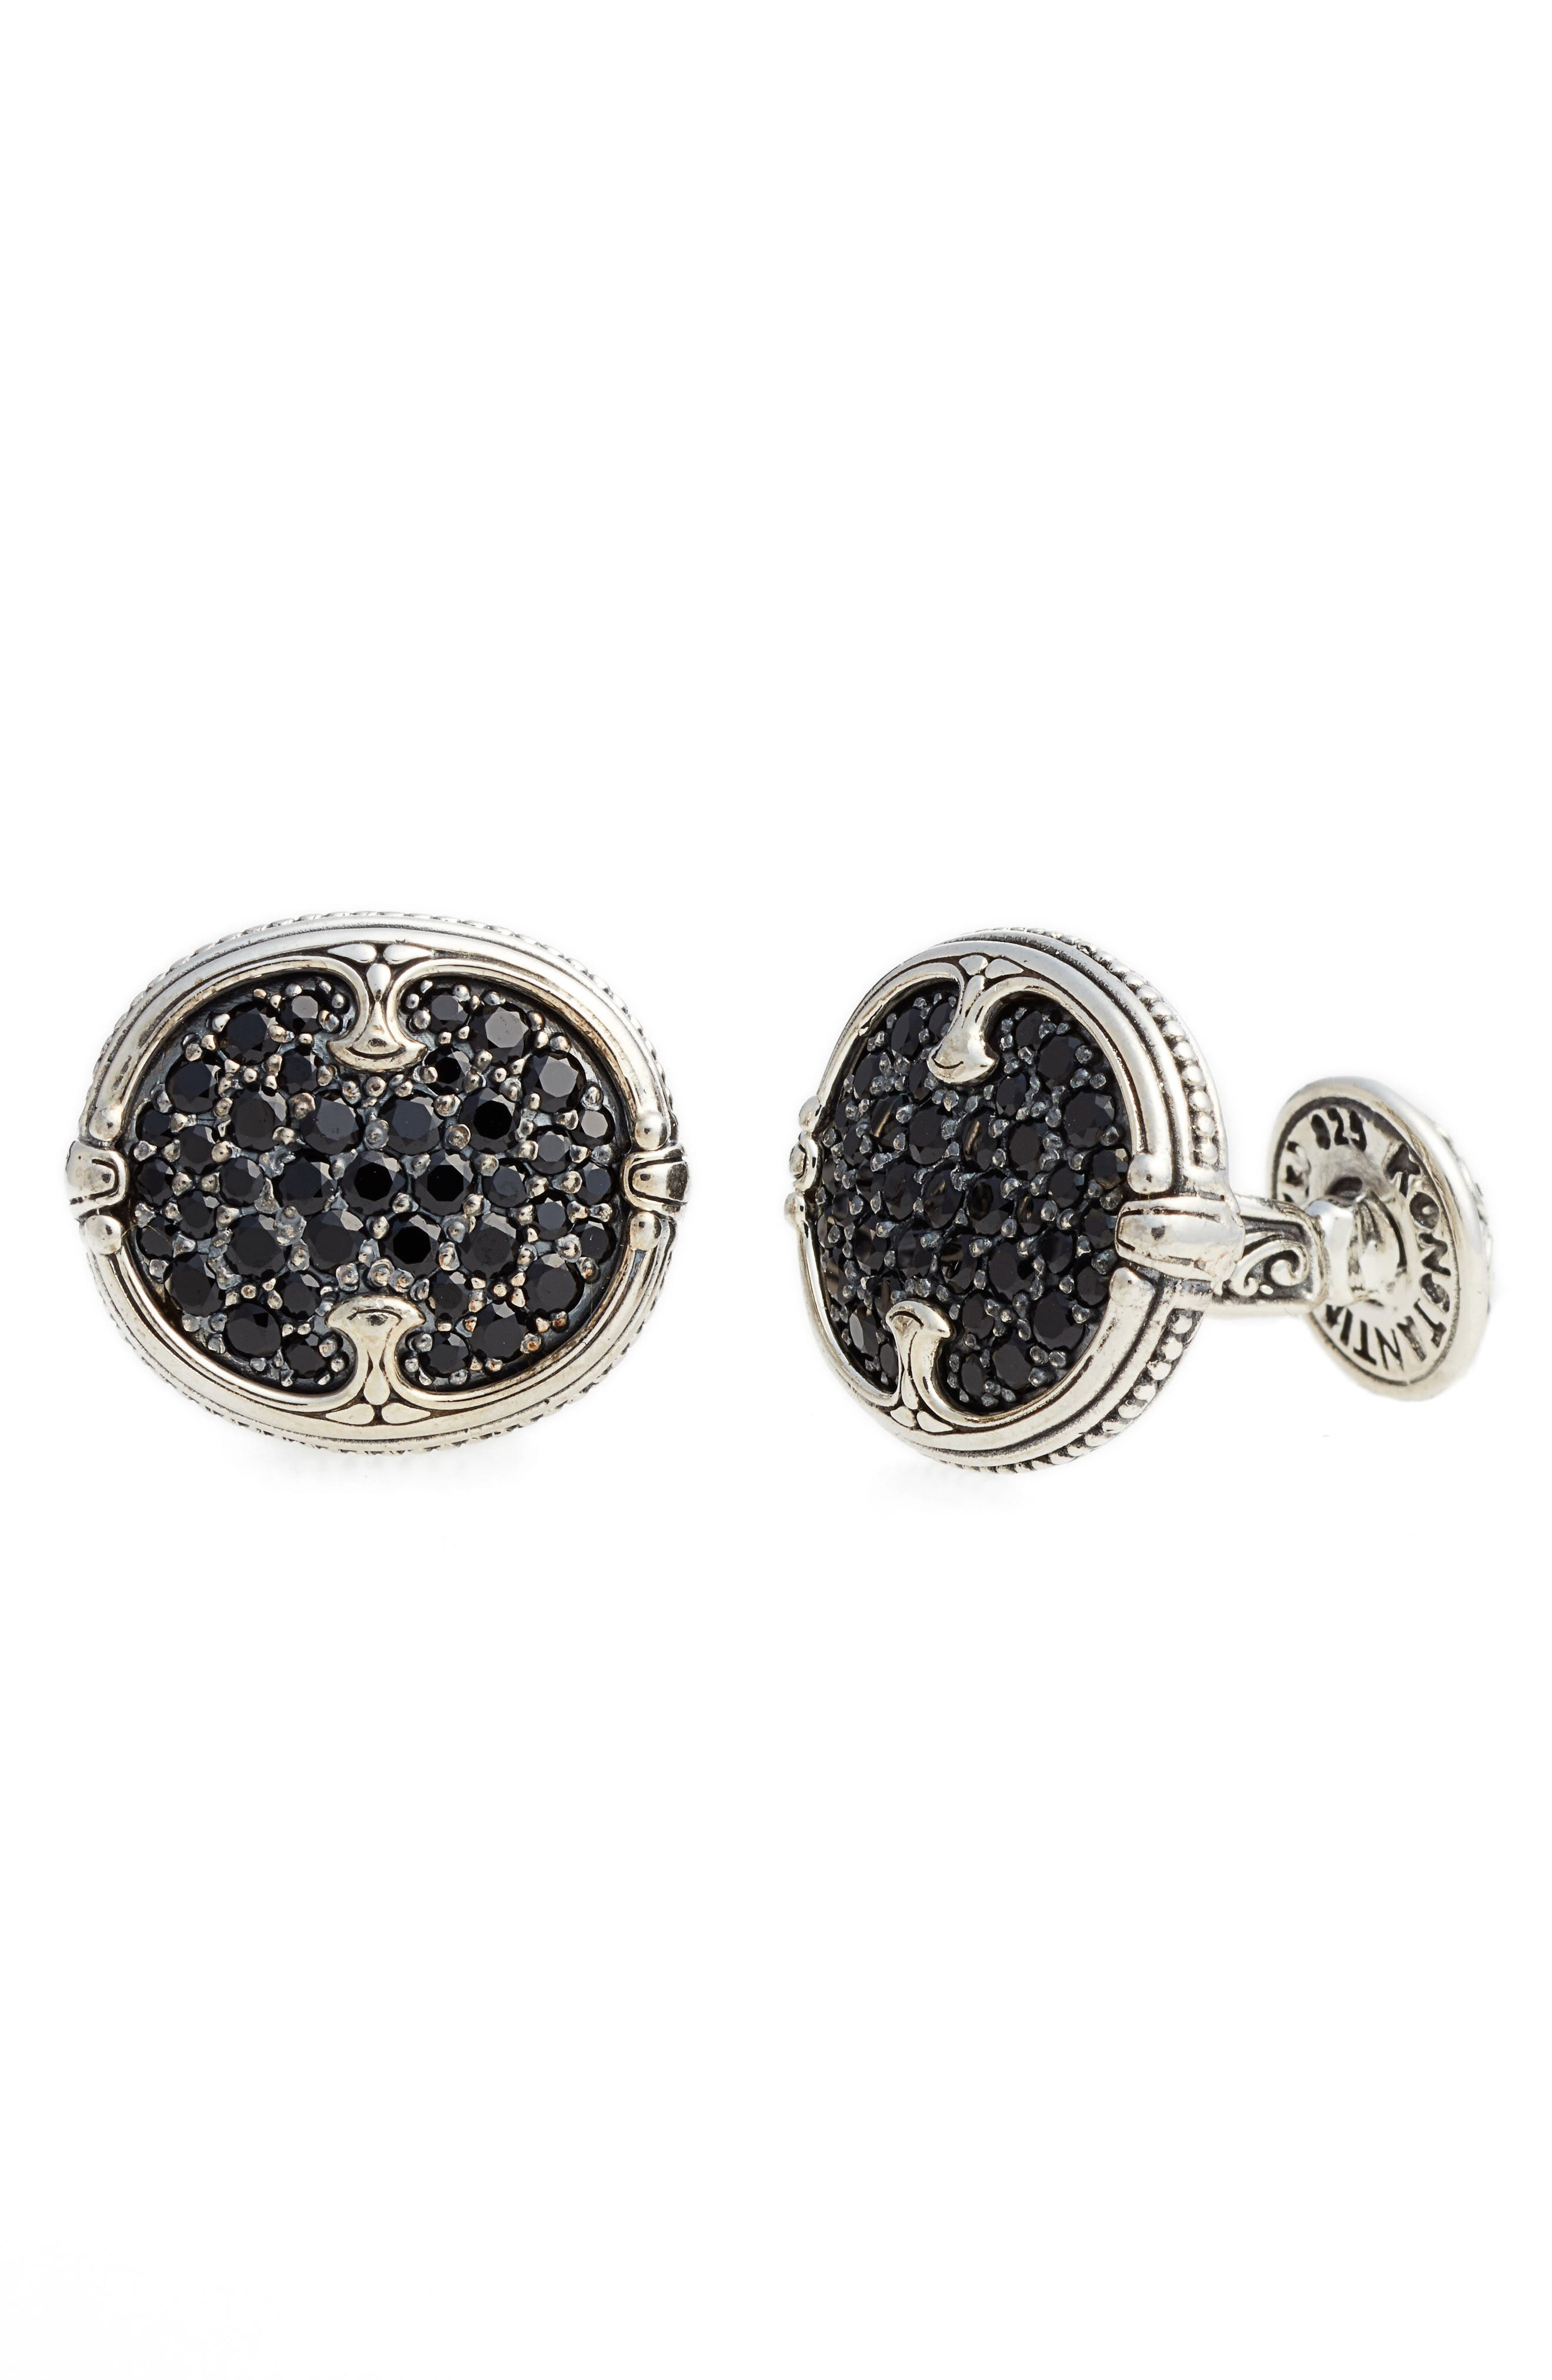 Spinel Oval Cuff Links,                         Main,                         color, Silver/ Black